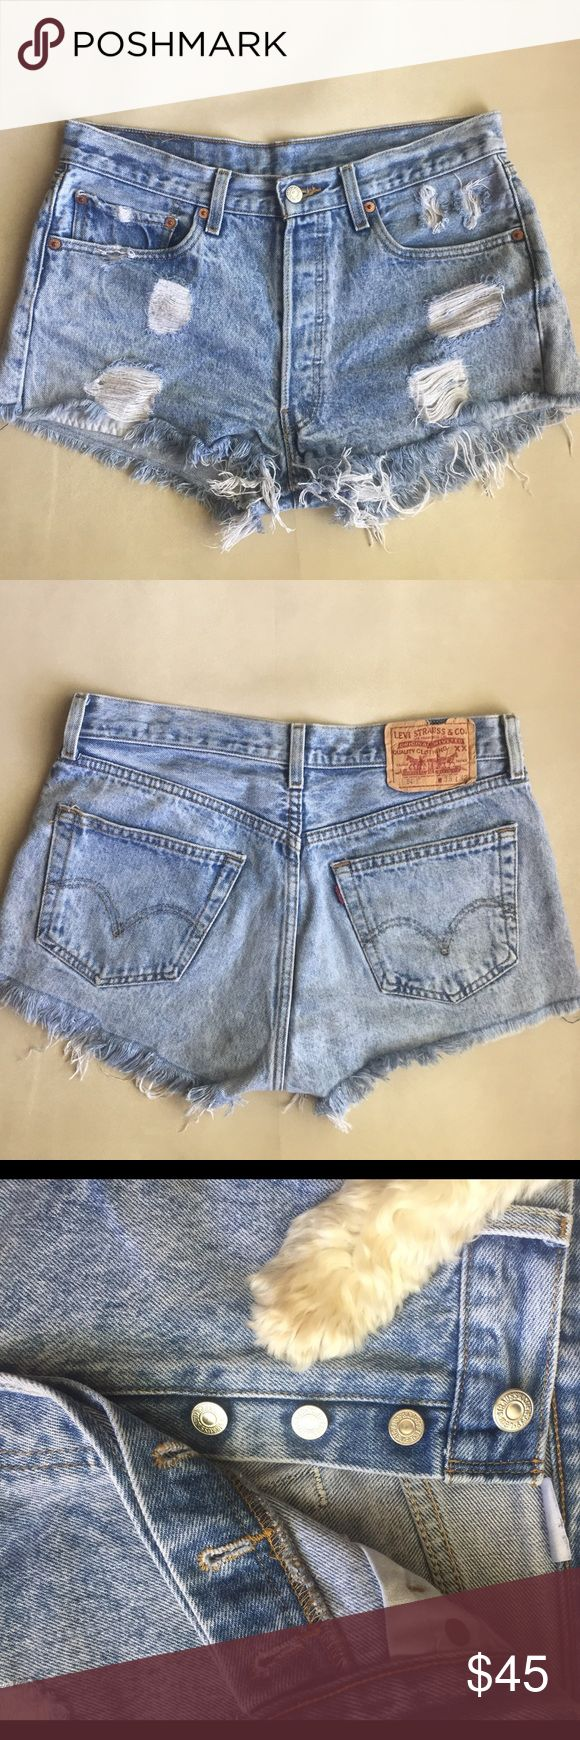 """501 Levi's High Waisted Shorts- Button Fly These deconstructed shorts are perrrrfect for any wardrobe! They're so comfortable and asset enhancing. Last photo is printed on the back of one of the pockets. Ha cute. 14"""" back rise 11.5"""" front rise 31.5"""" Waist 2"""" inseam. 100% cotton! See measurements to ensure fit. Levi's Shorts Jean Shorts"""